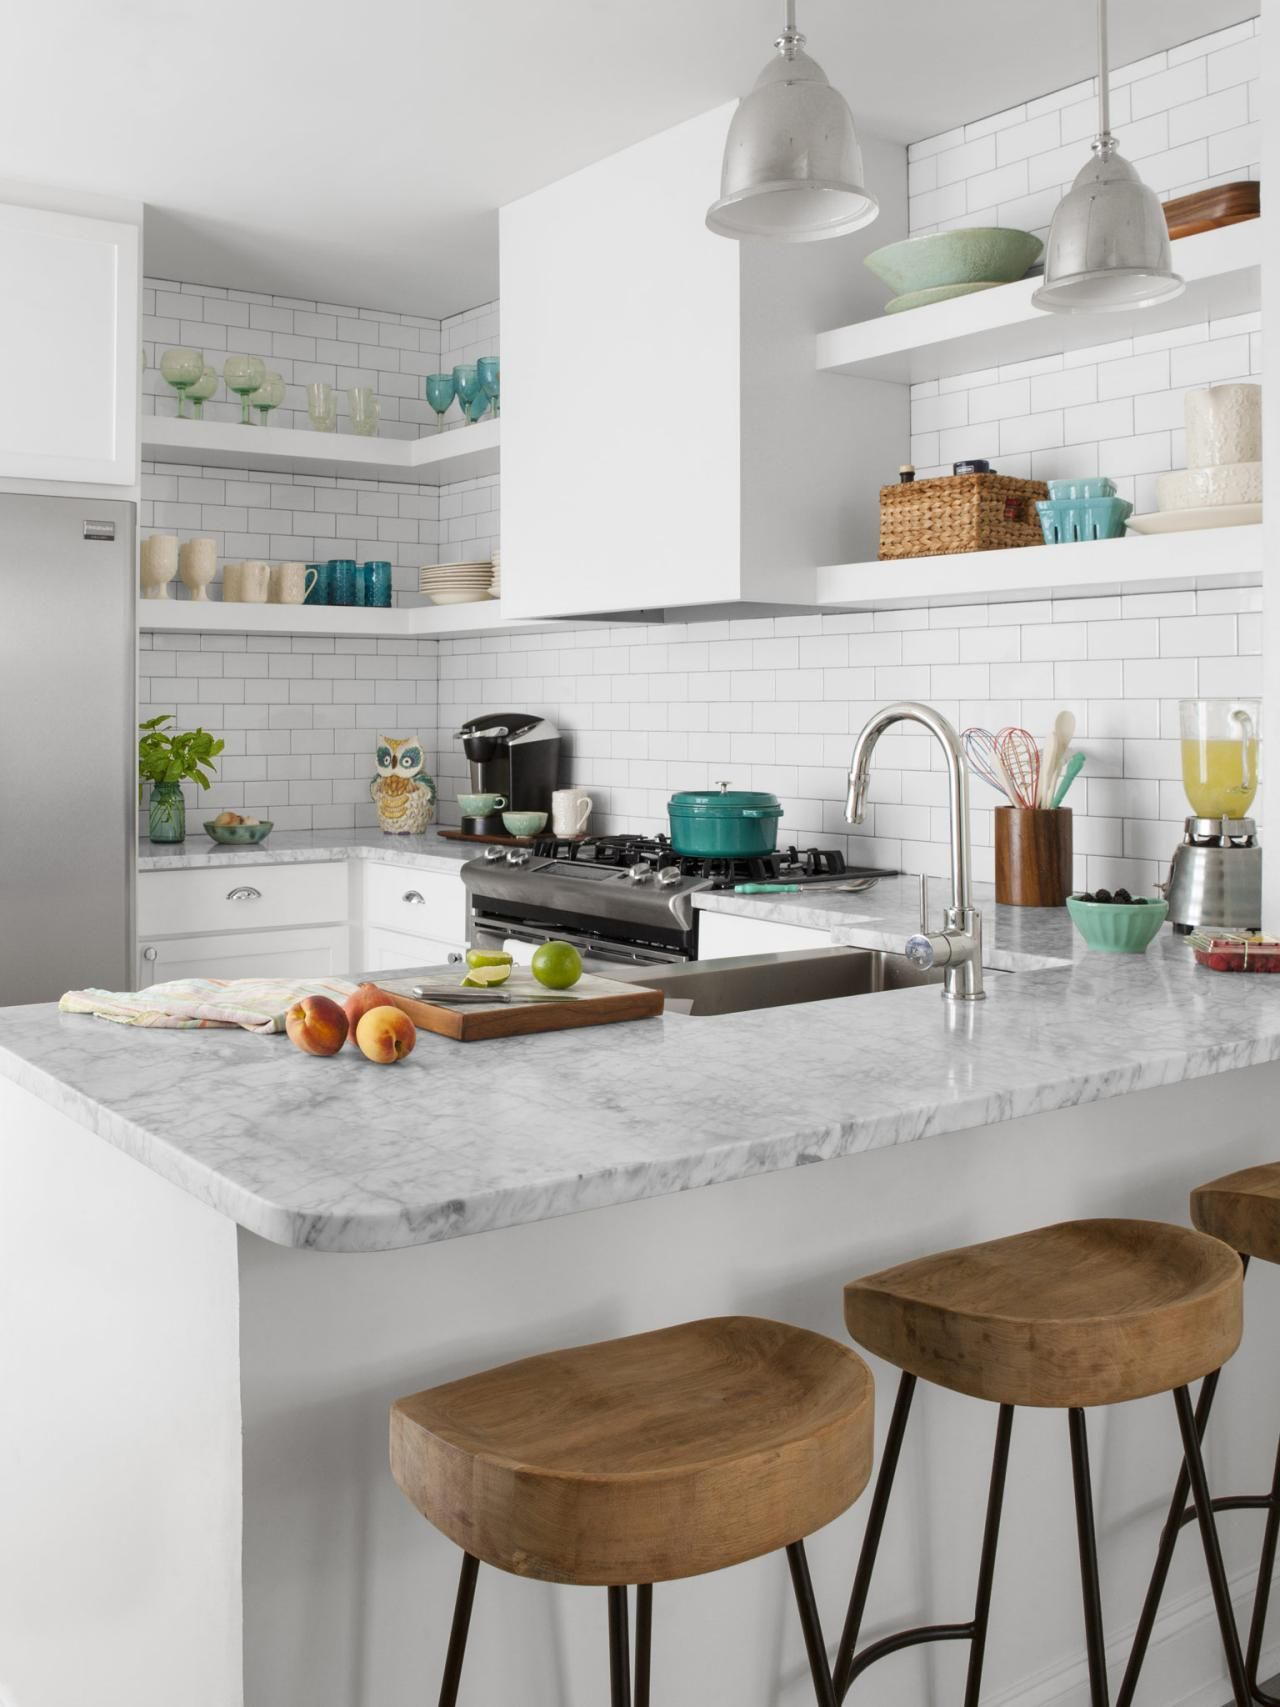 Small-Space Kitchen Remodel | Small space kitchen, Space kitchen and ...